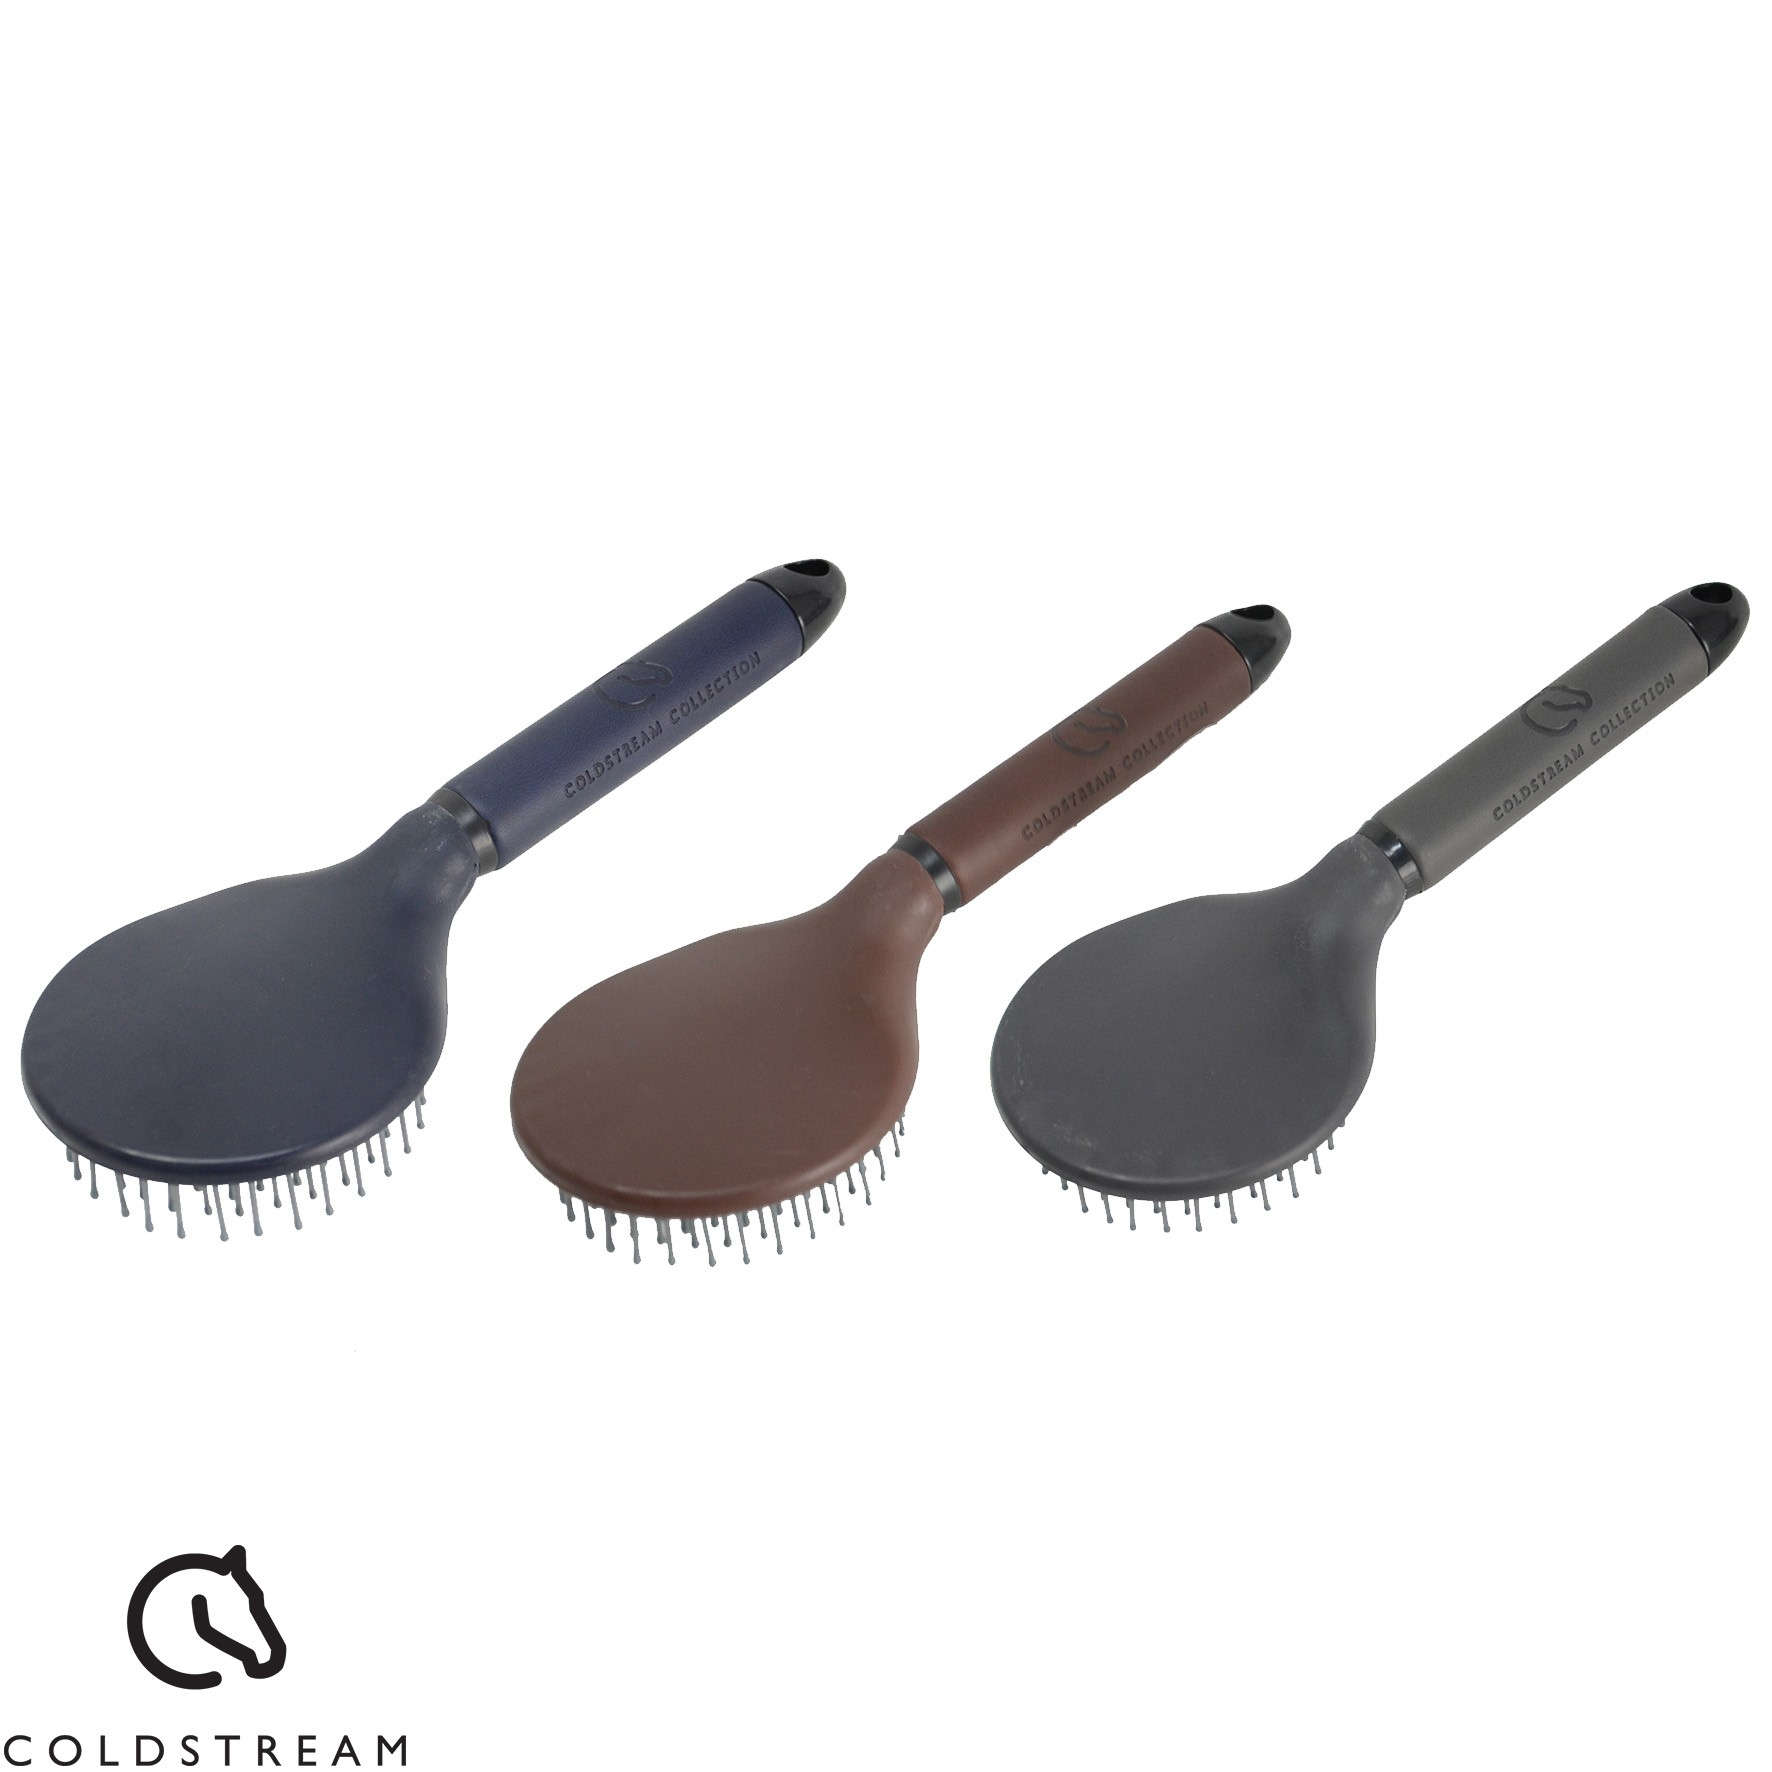 Coldstream Faux Leather Mane and Tail Brush